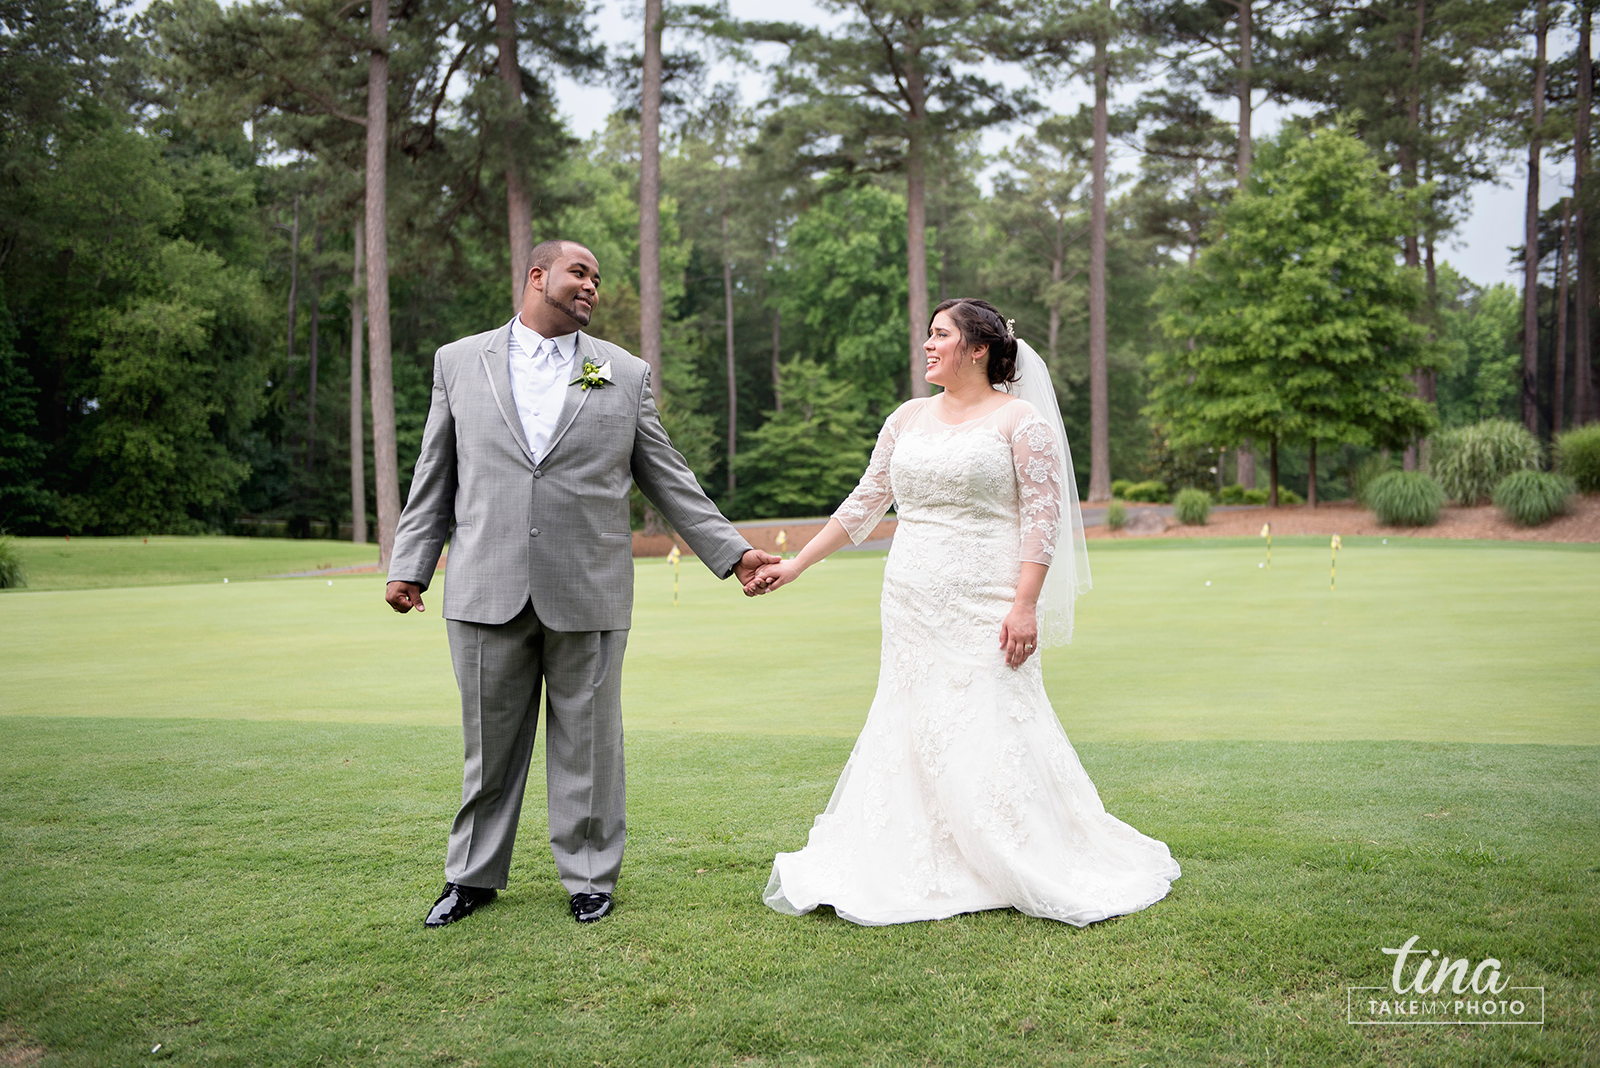 wedding-photographer-bride-groom-portrait-summer-brandermill-country-club-virginia-7-rain